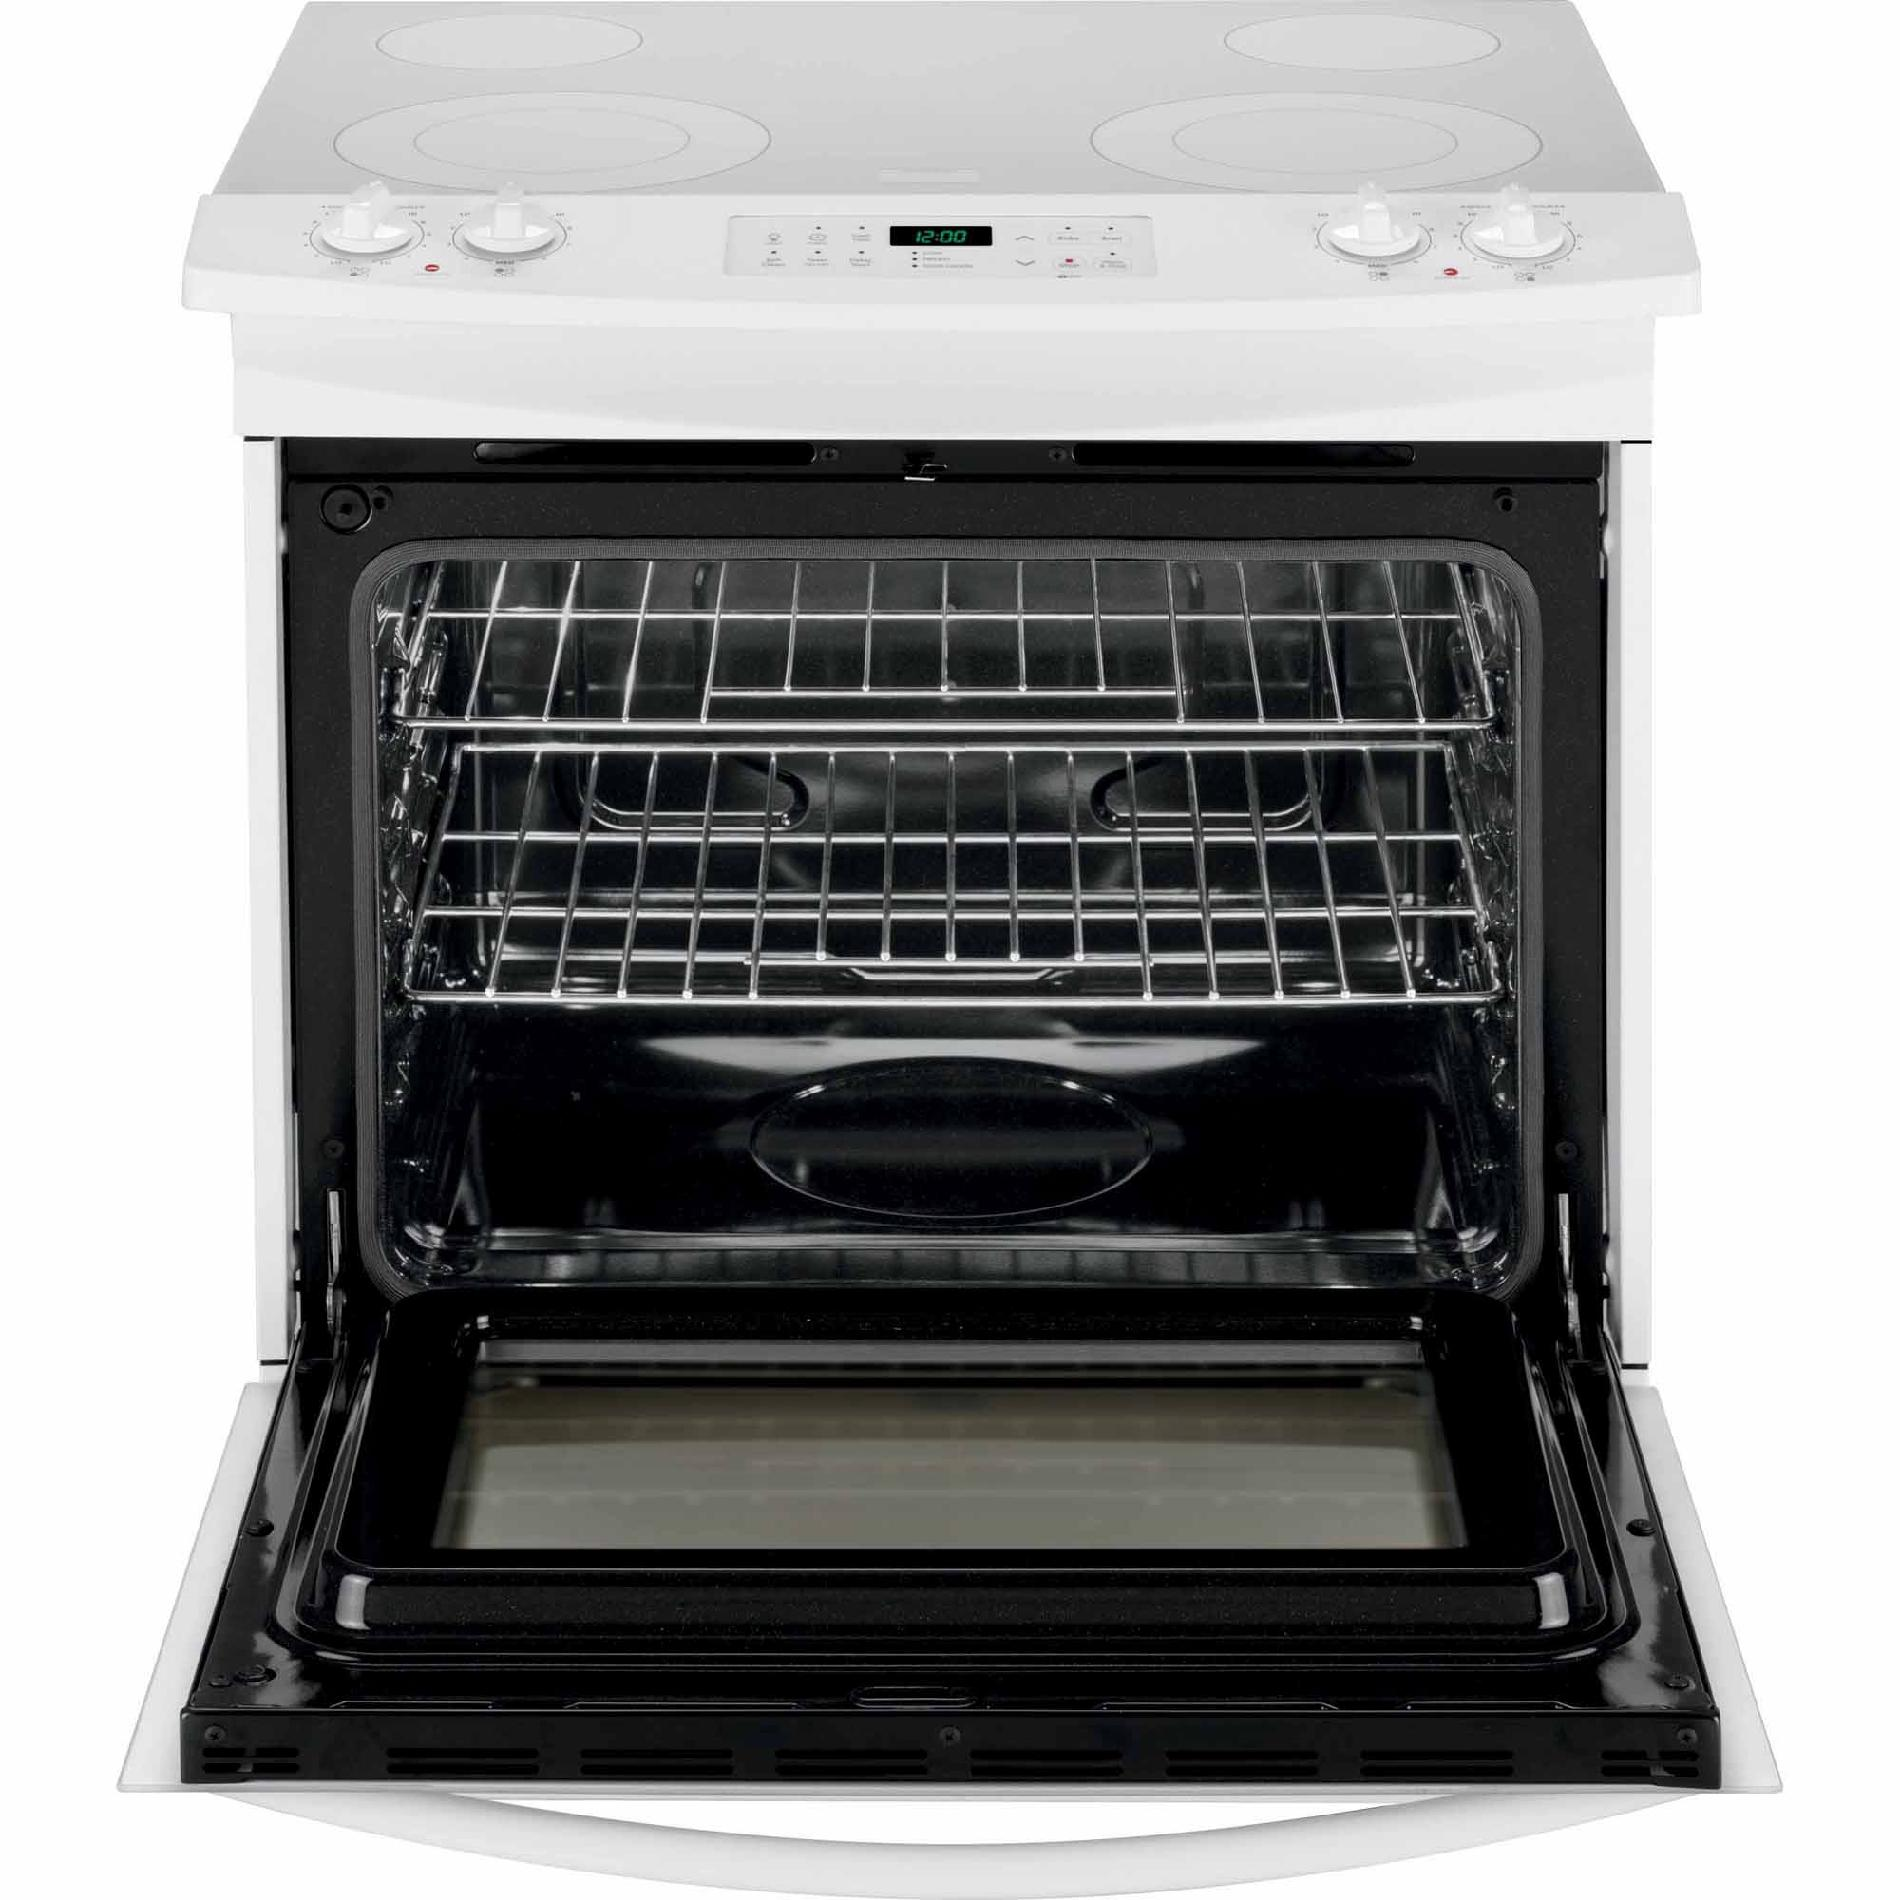 Kenmore 4.6 cu. ft. Slide-In Electric Range w/ White Ceramic Smoothtop Cooktop - White